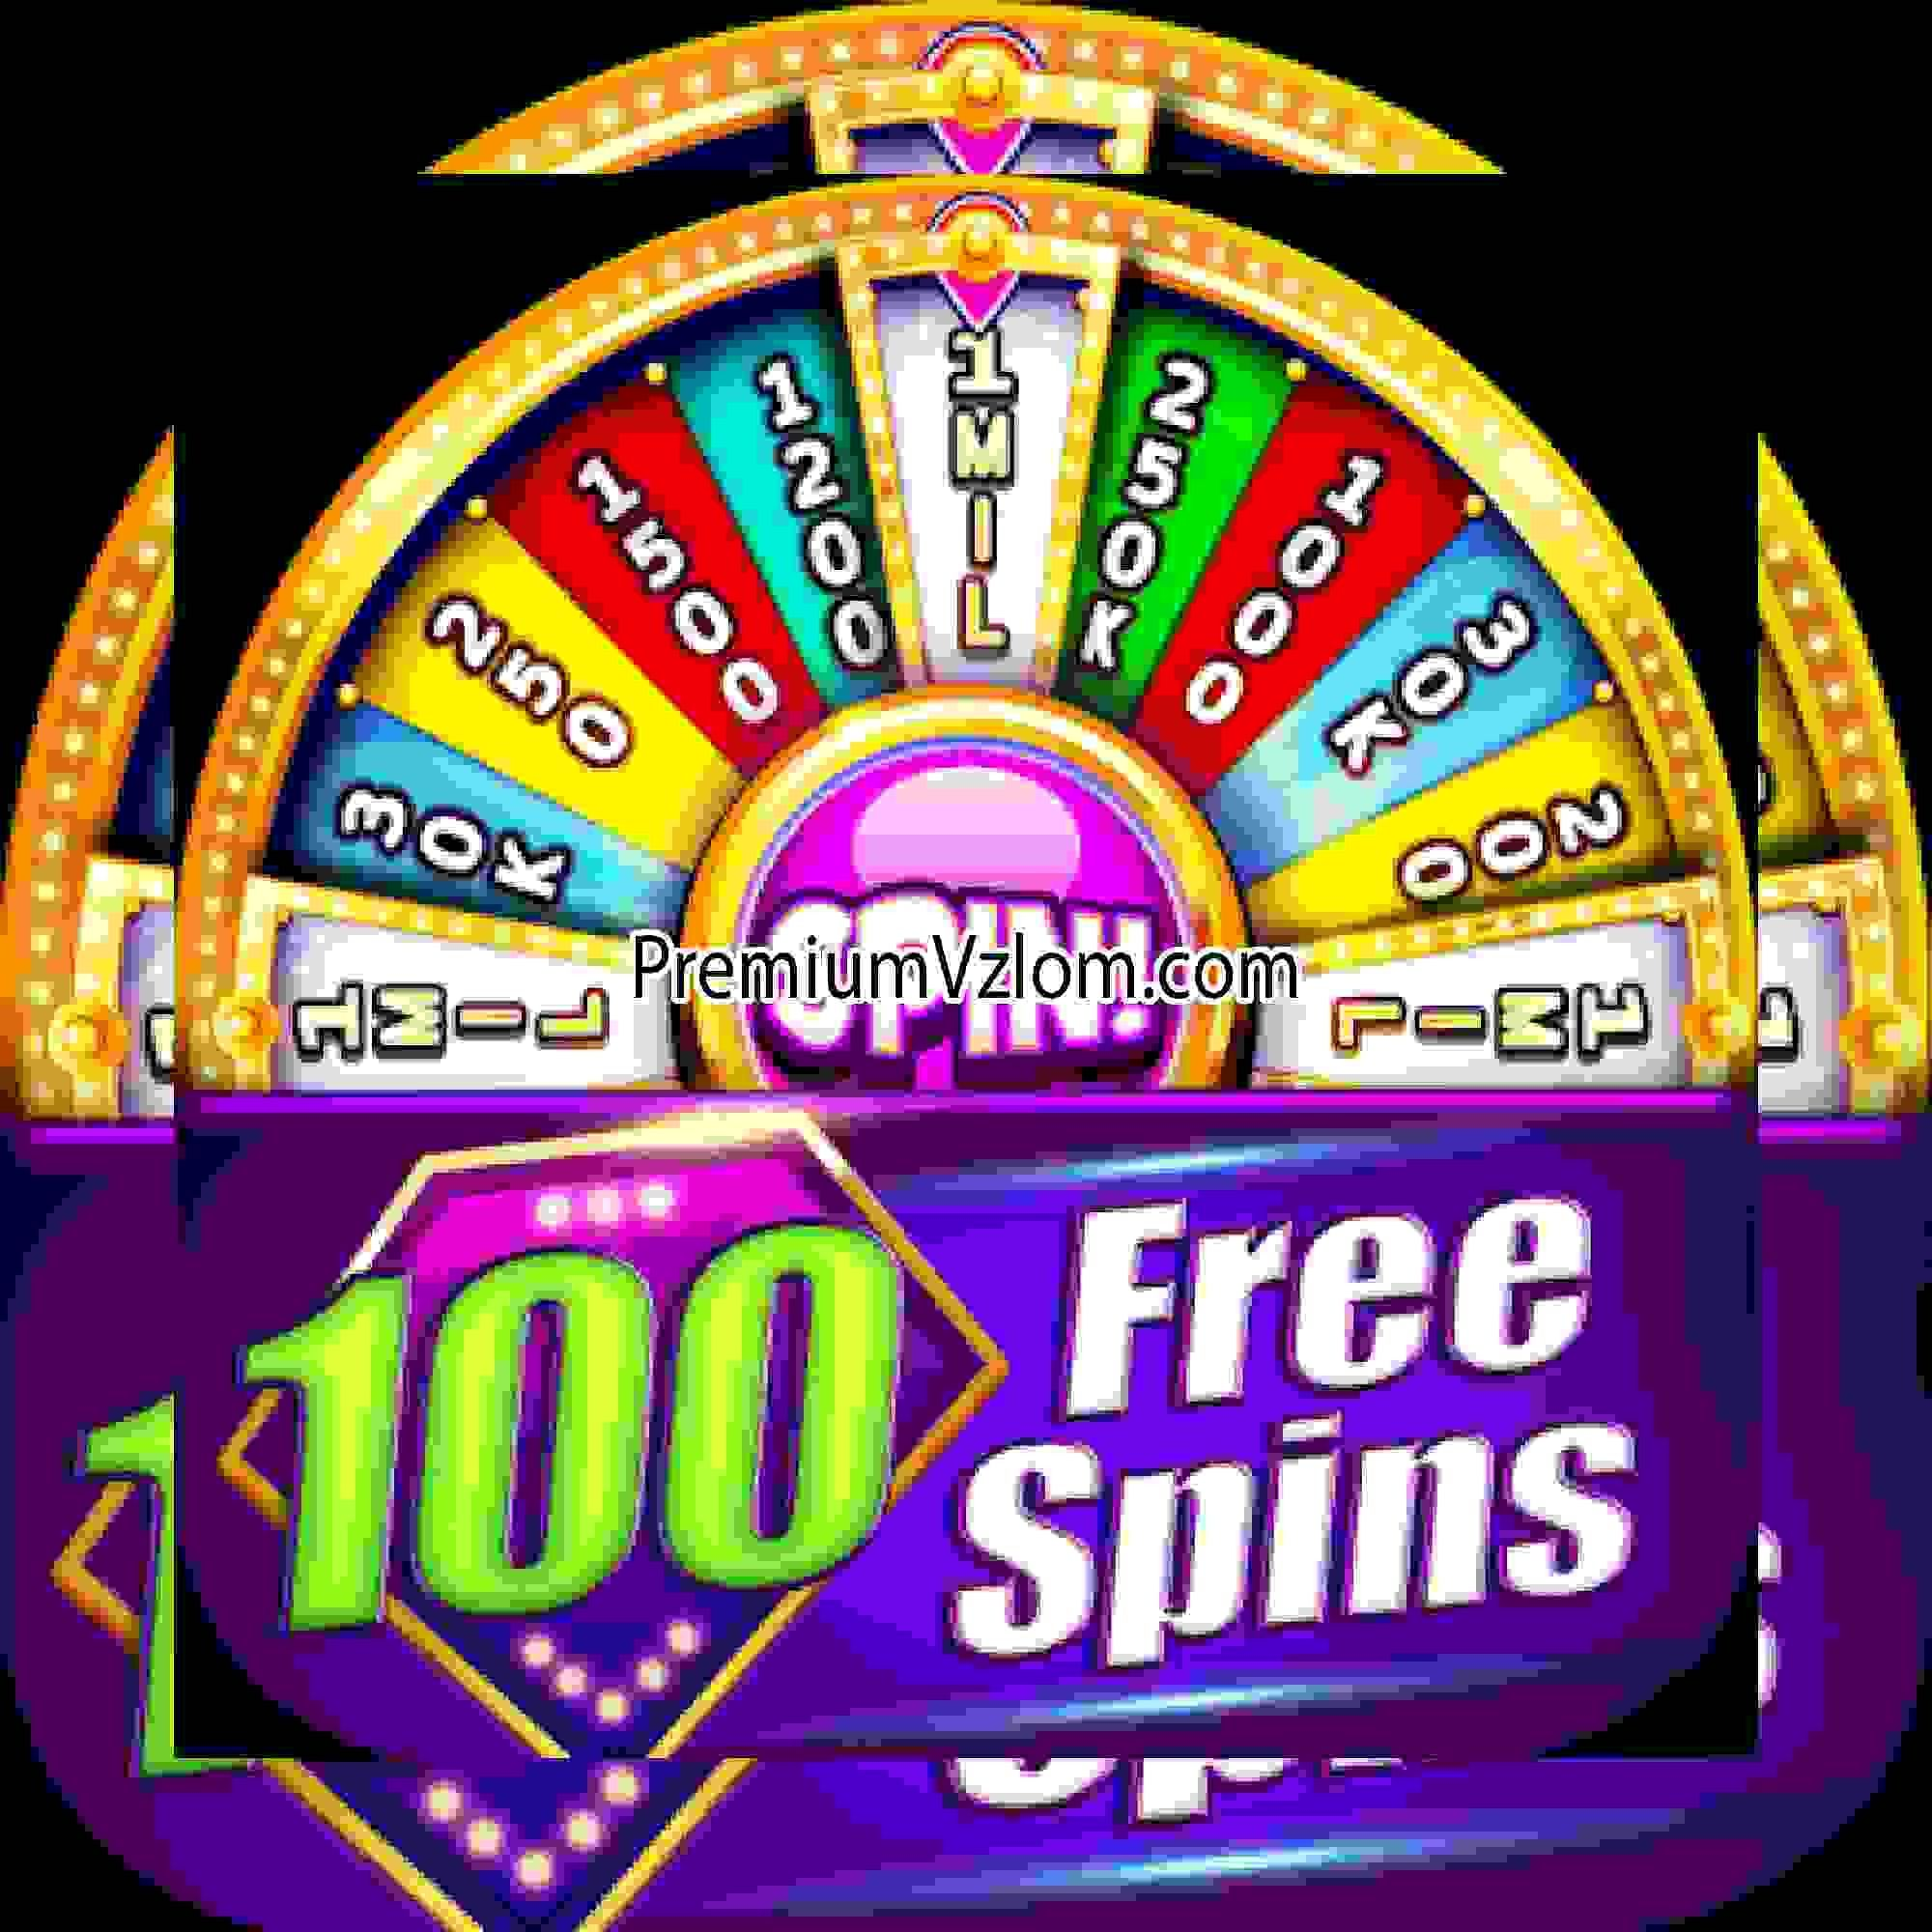 On the official sites, the best online casino, you can play slot machines for real money from different manufacturers of games such as NetEnt, Microgaming, Quickspin, Yggdrasil, Play'n GO, Nolimit City, Endorphina, Thunderkick and others with different mechanics of the game.